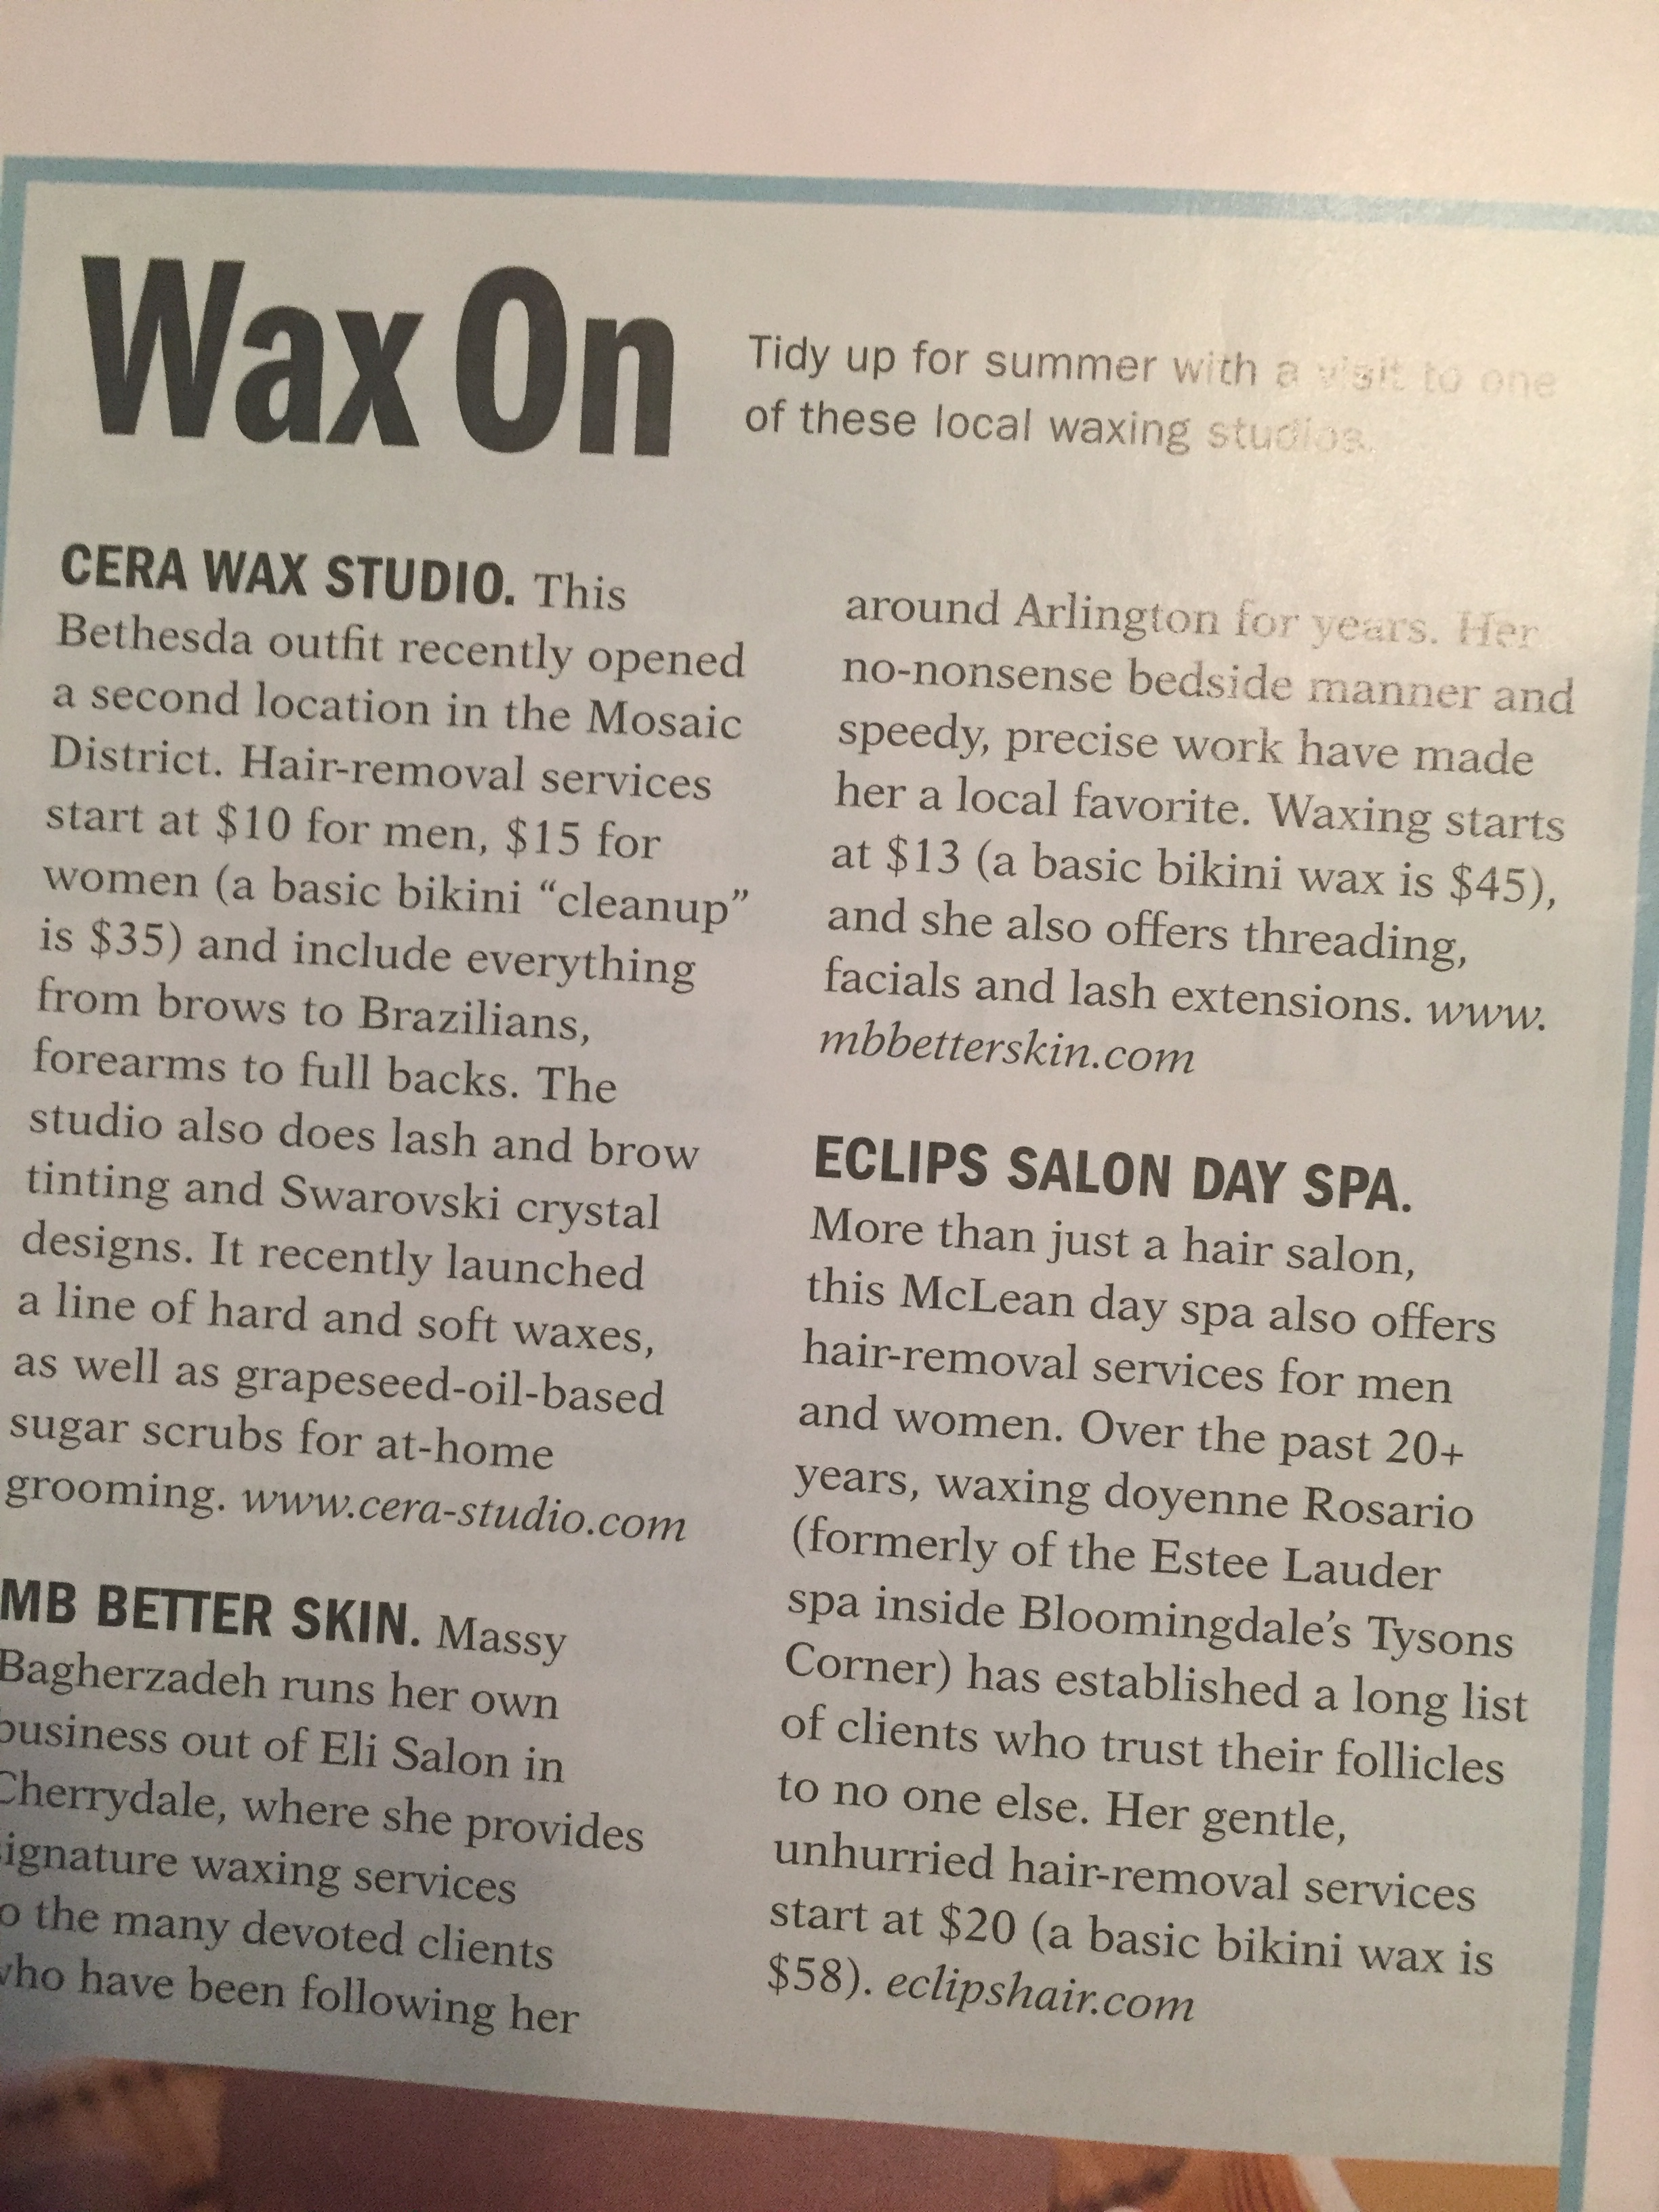 ARLINGTON MAGAZINE - Rosario and Eclips Mclean featured!